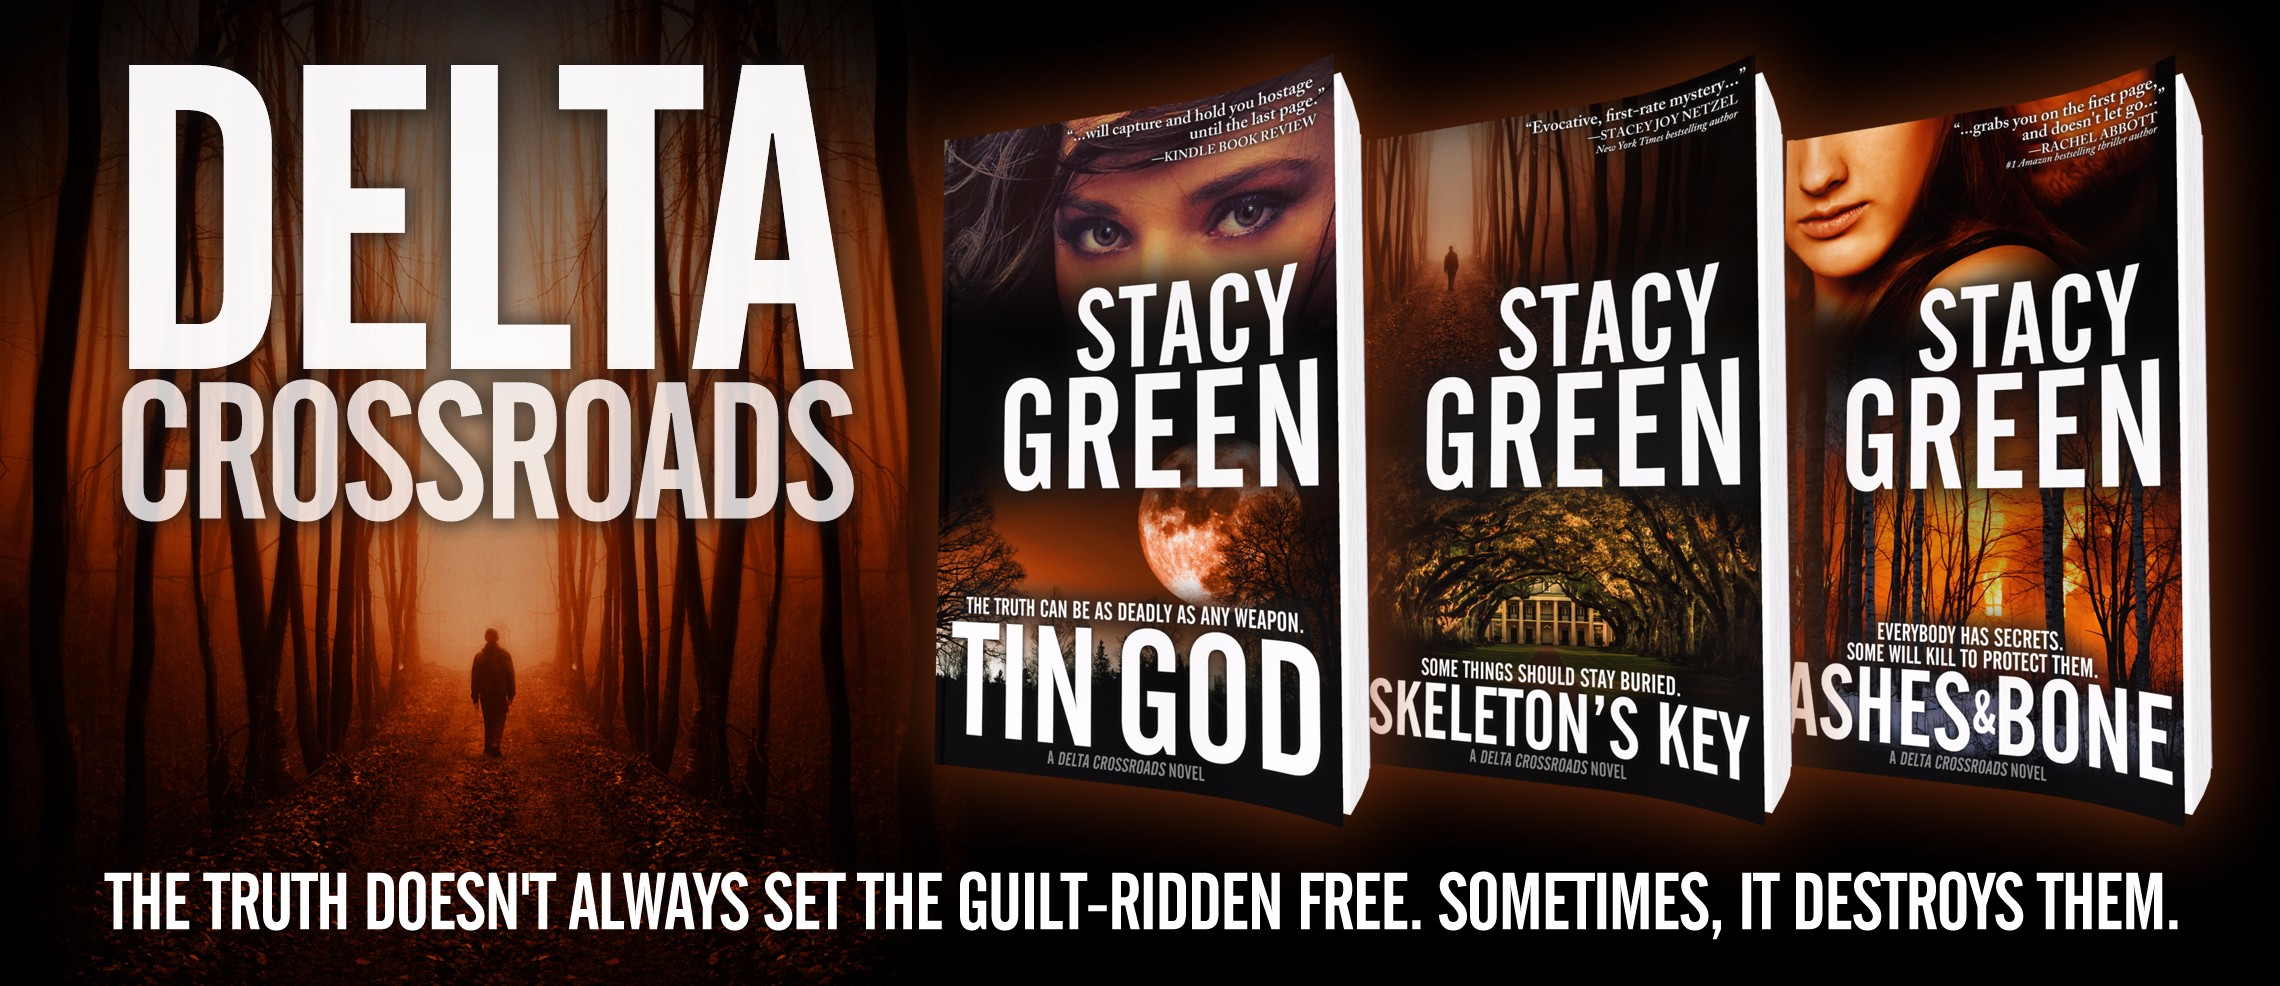 Delta Crossroads by author Stacy Green